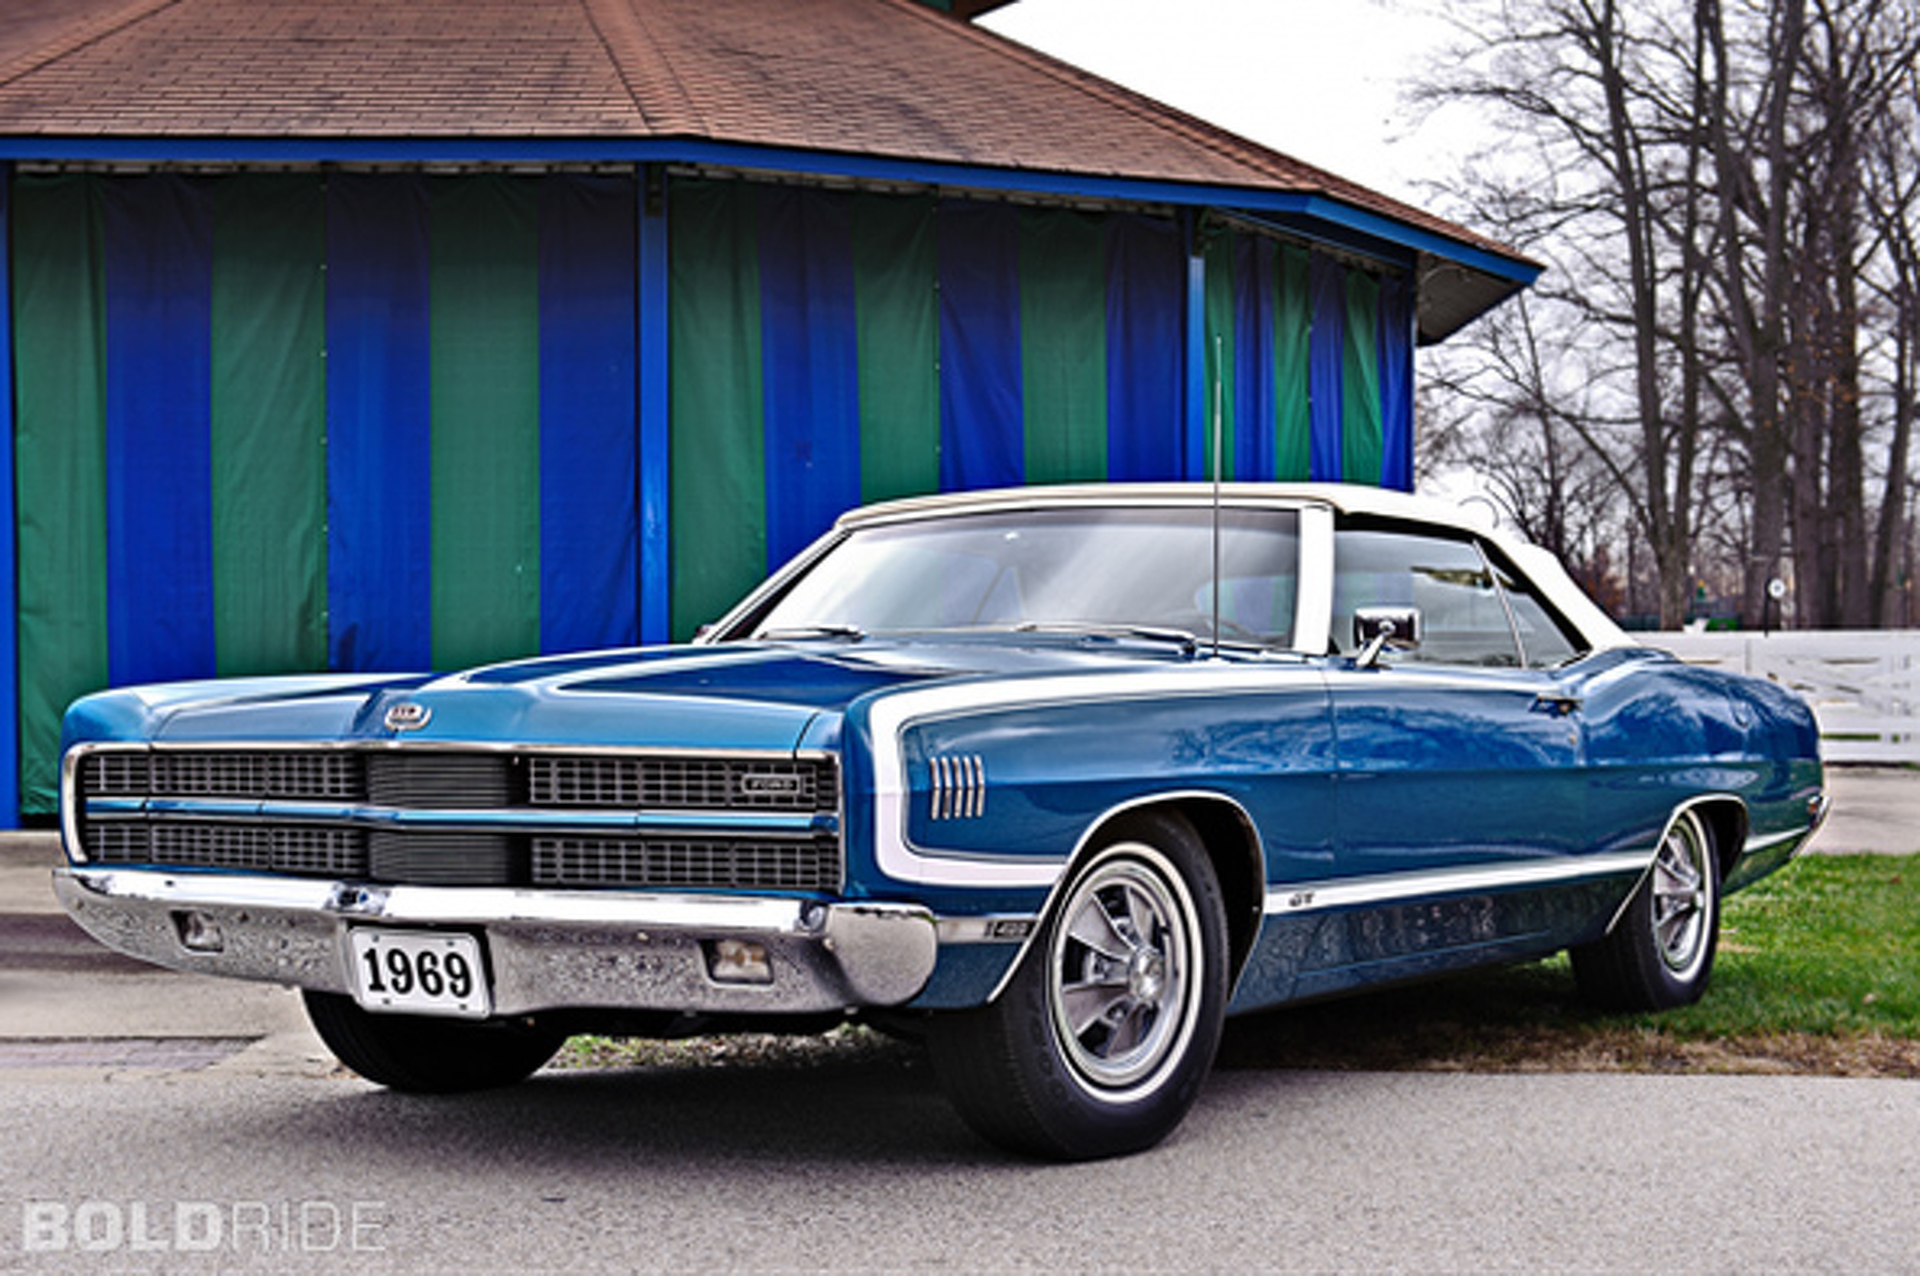 Your Ride: 1969 Ford Galaxie